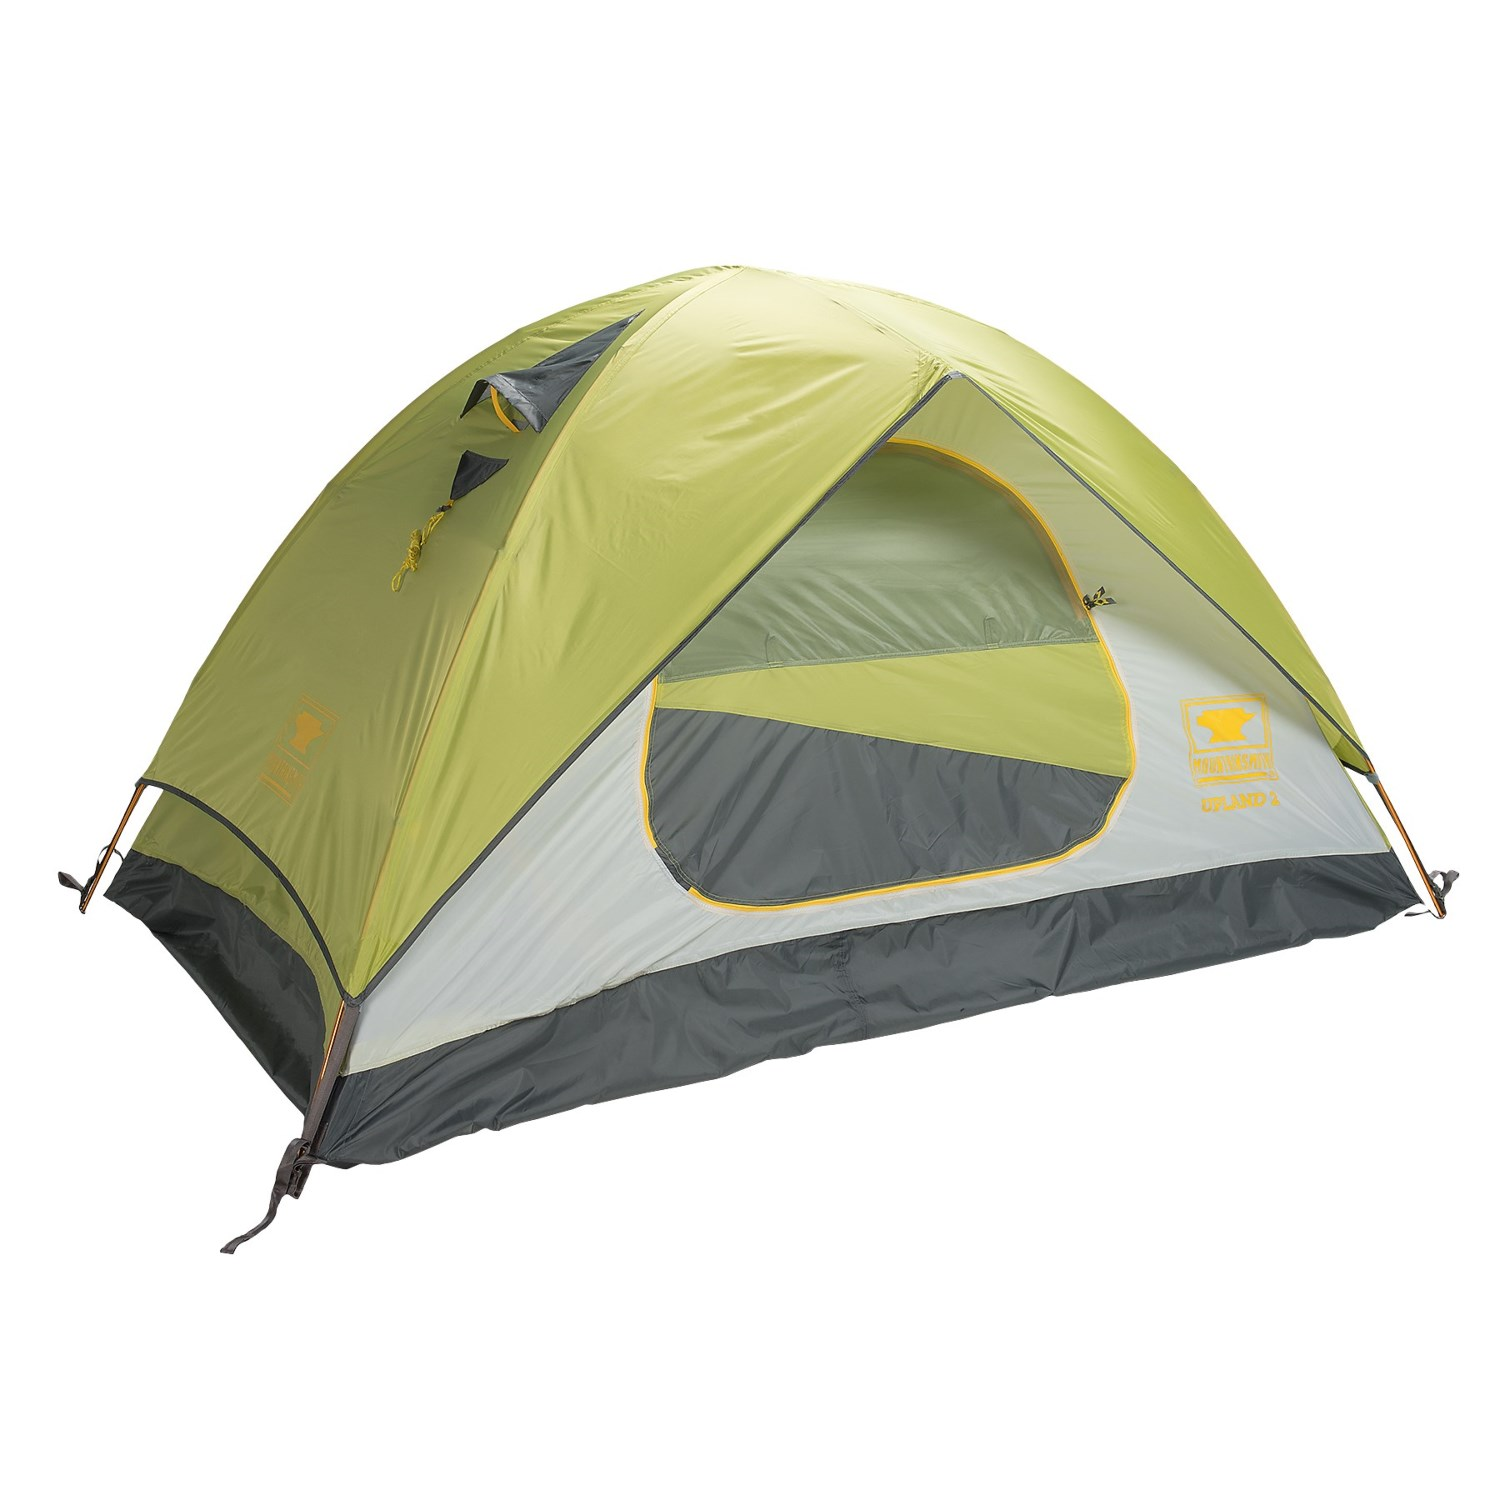 Mountainsmith Upland Tent - 2-Person 3-Season  sc 1 st  Sierra Trading Post : mountainsmith tent - memphite.com